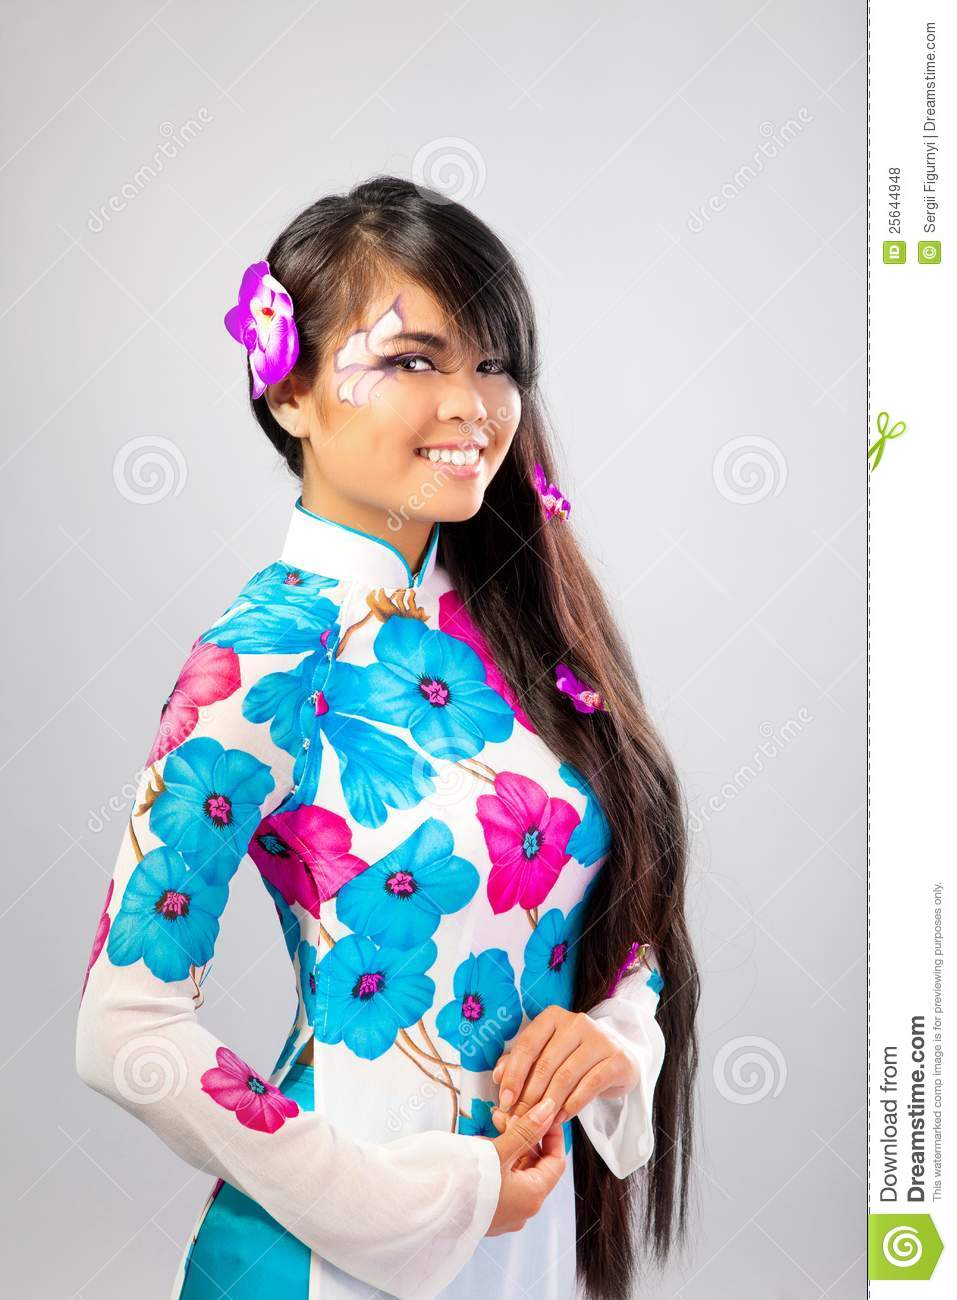 La belle femme asiatique porte une robe nationale photo stock image du costume beau 25644948 - Porte asiatique ...